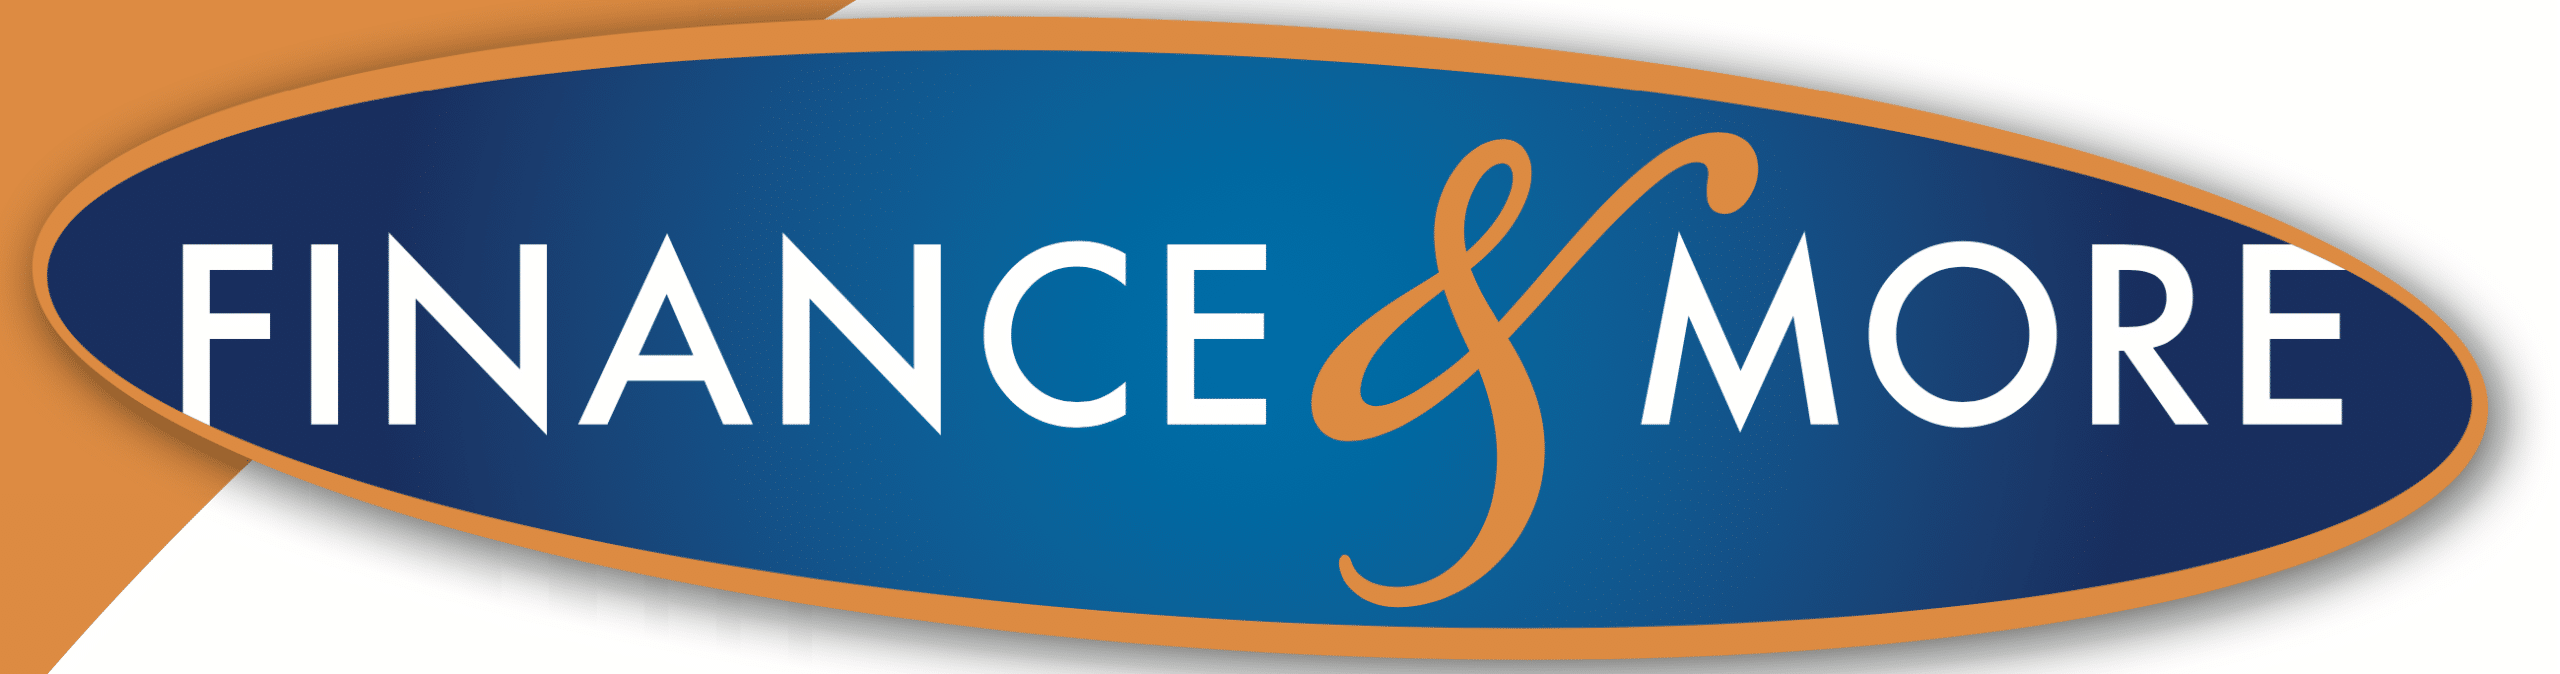 Finance & More-logo